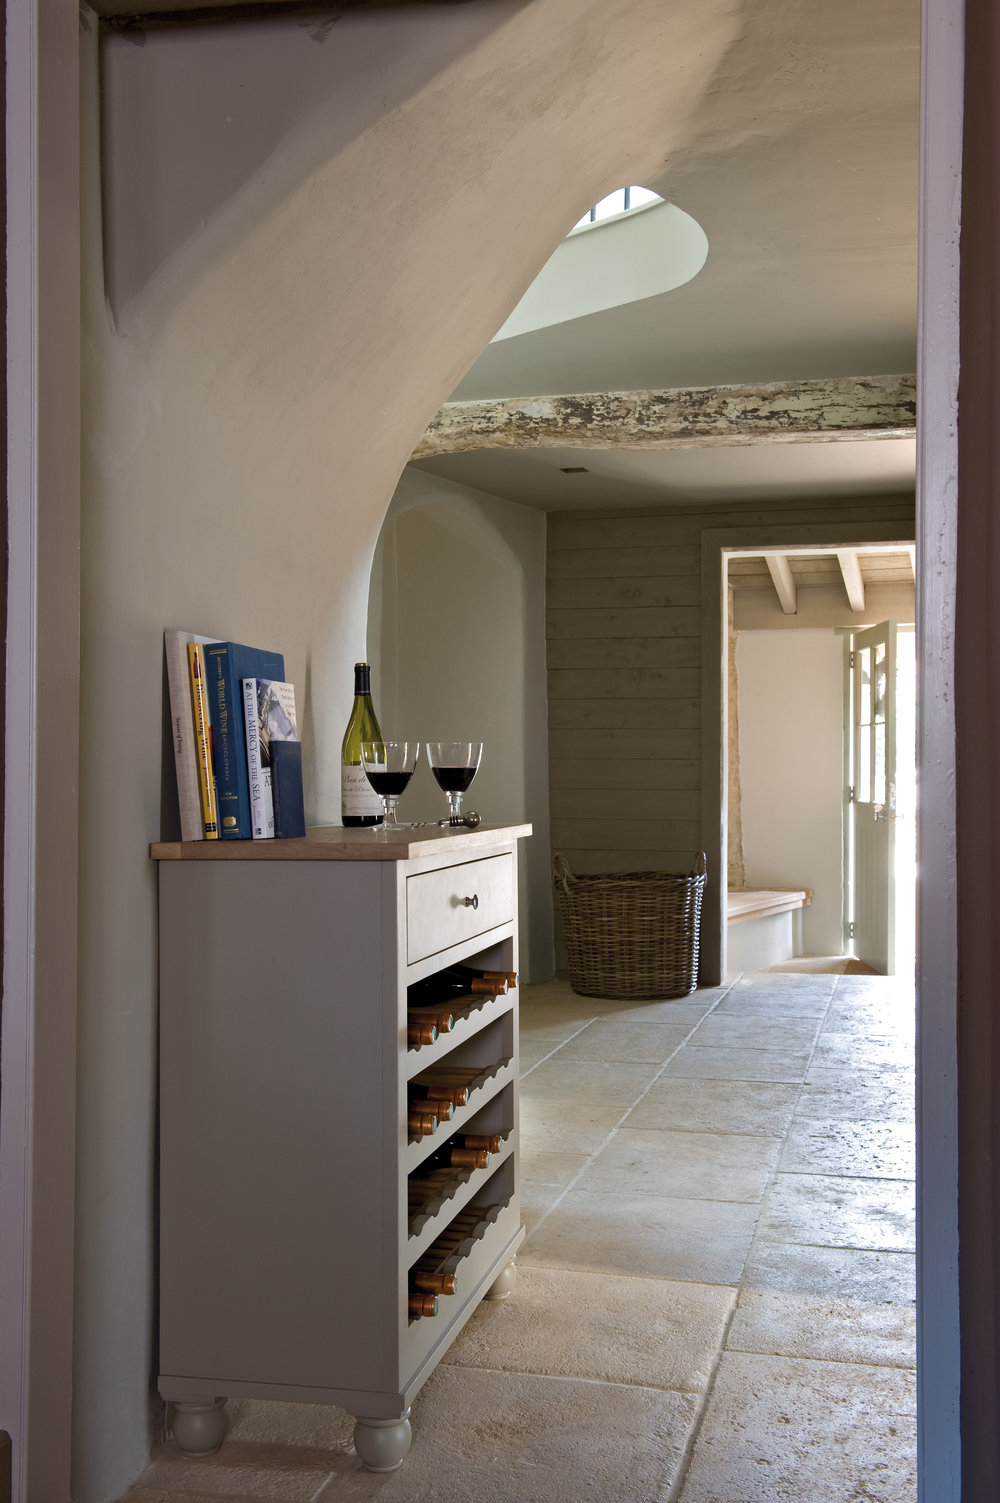 Suffolk 3ft Wine Rack-Image3.jpg